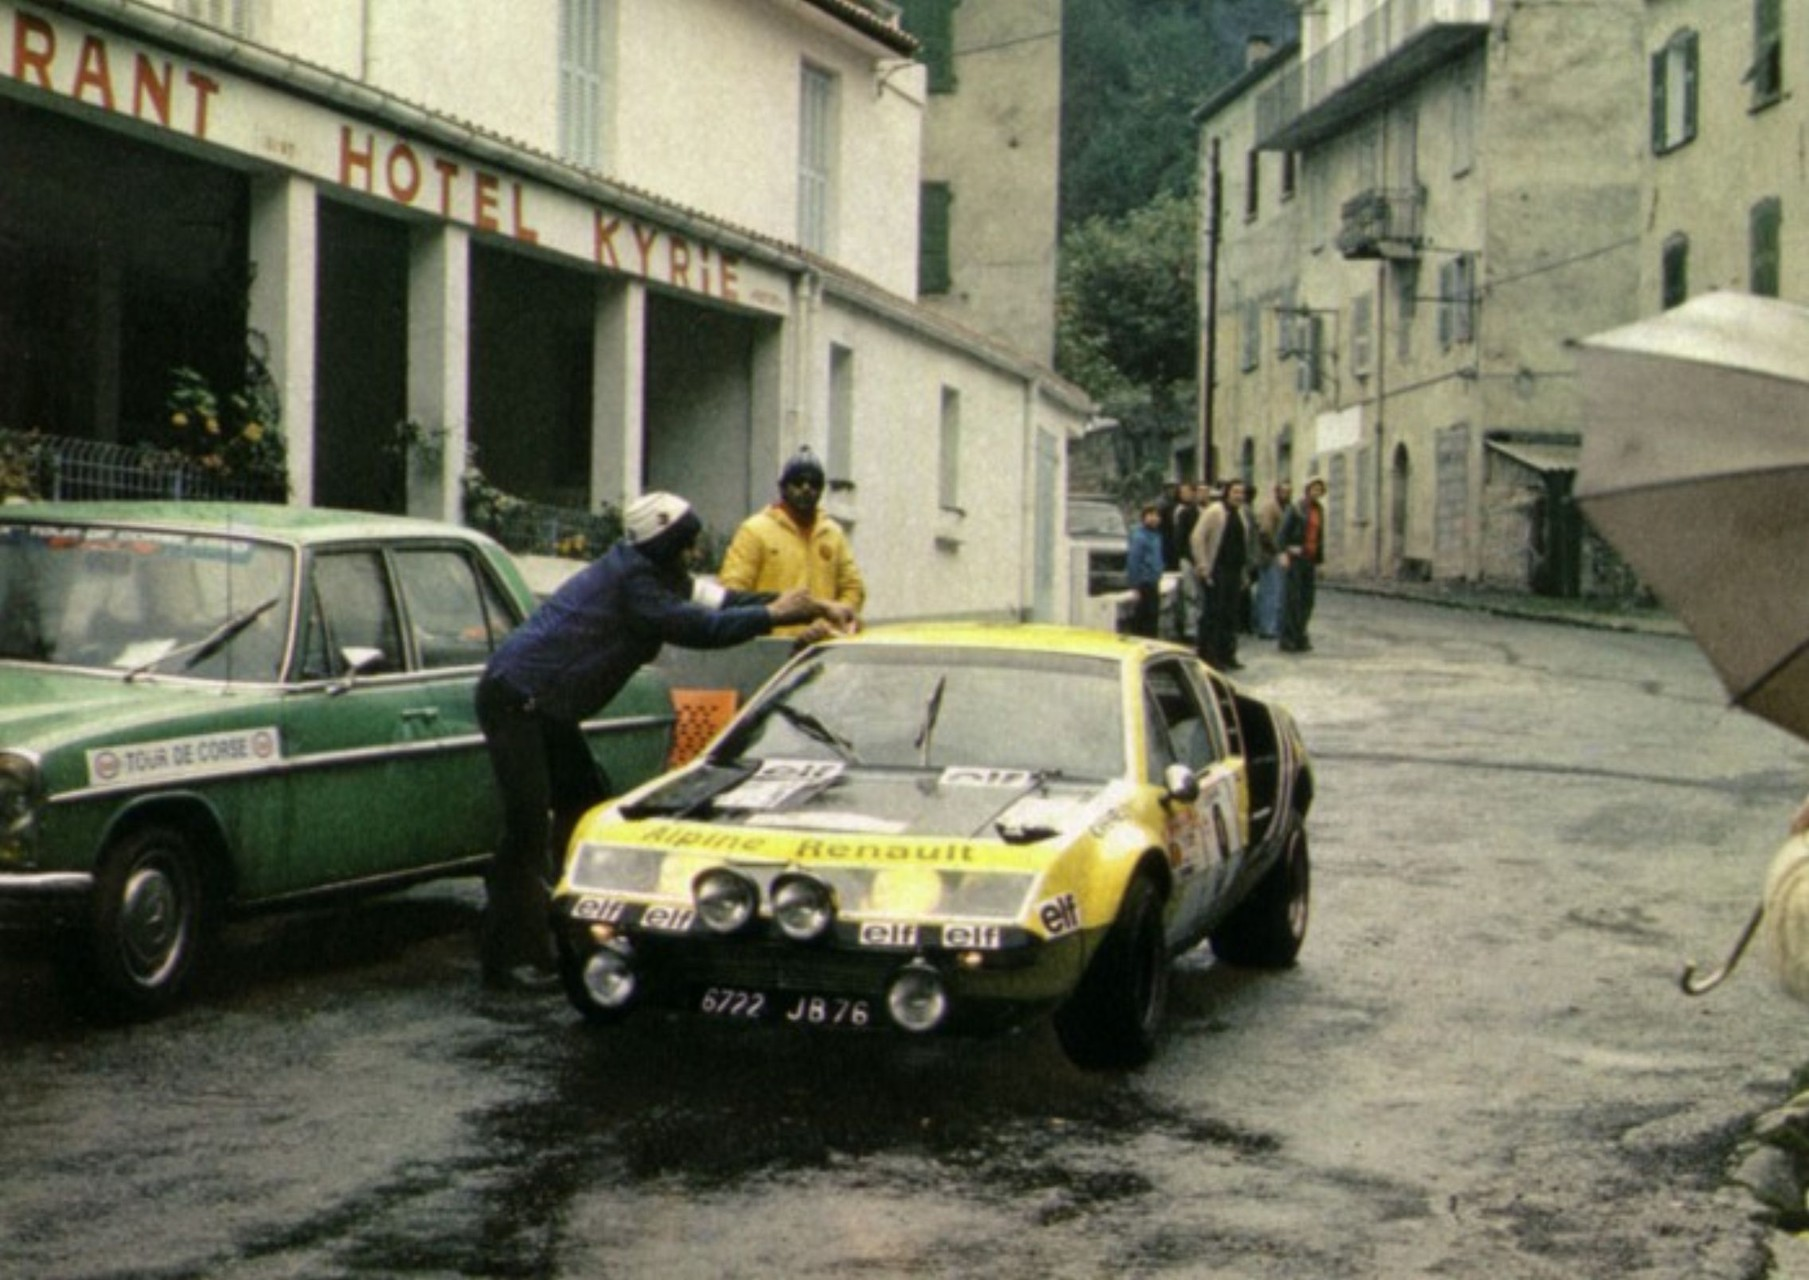 6 ème : VINCENT-JAUBERT (ALPINE A 310)